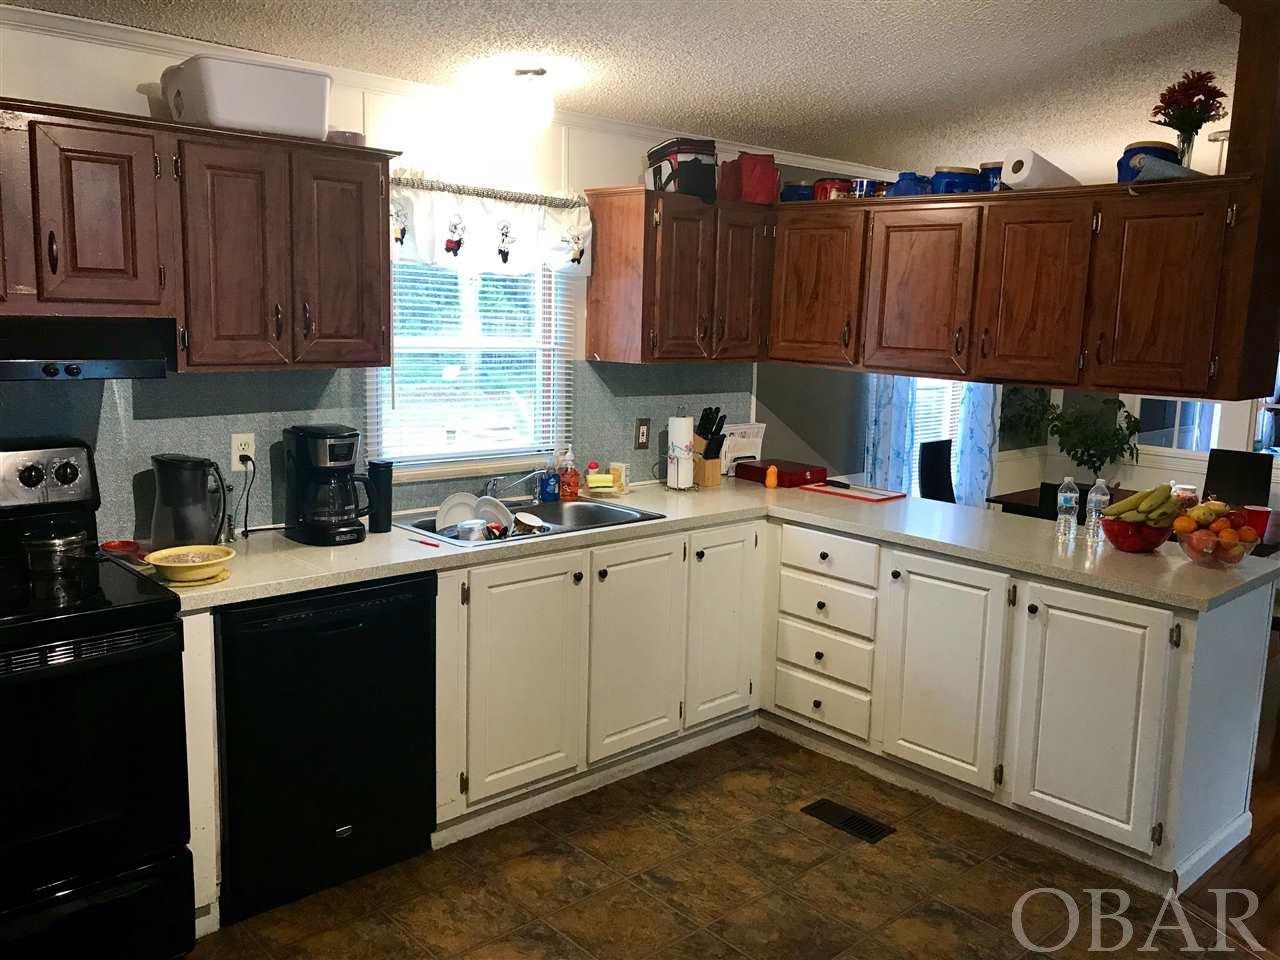 206 Mobile Road, Harbinger, NC 27941, 3 Bedrooms Bedrooms, ,2 BathroomsBathrooms,Residential,For sale,Mobile Road,102671